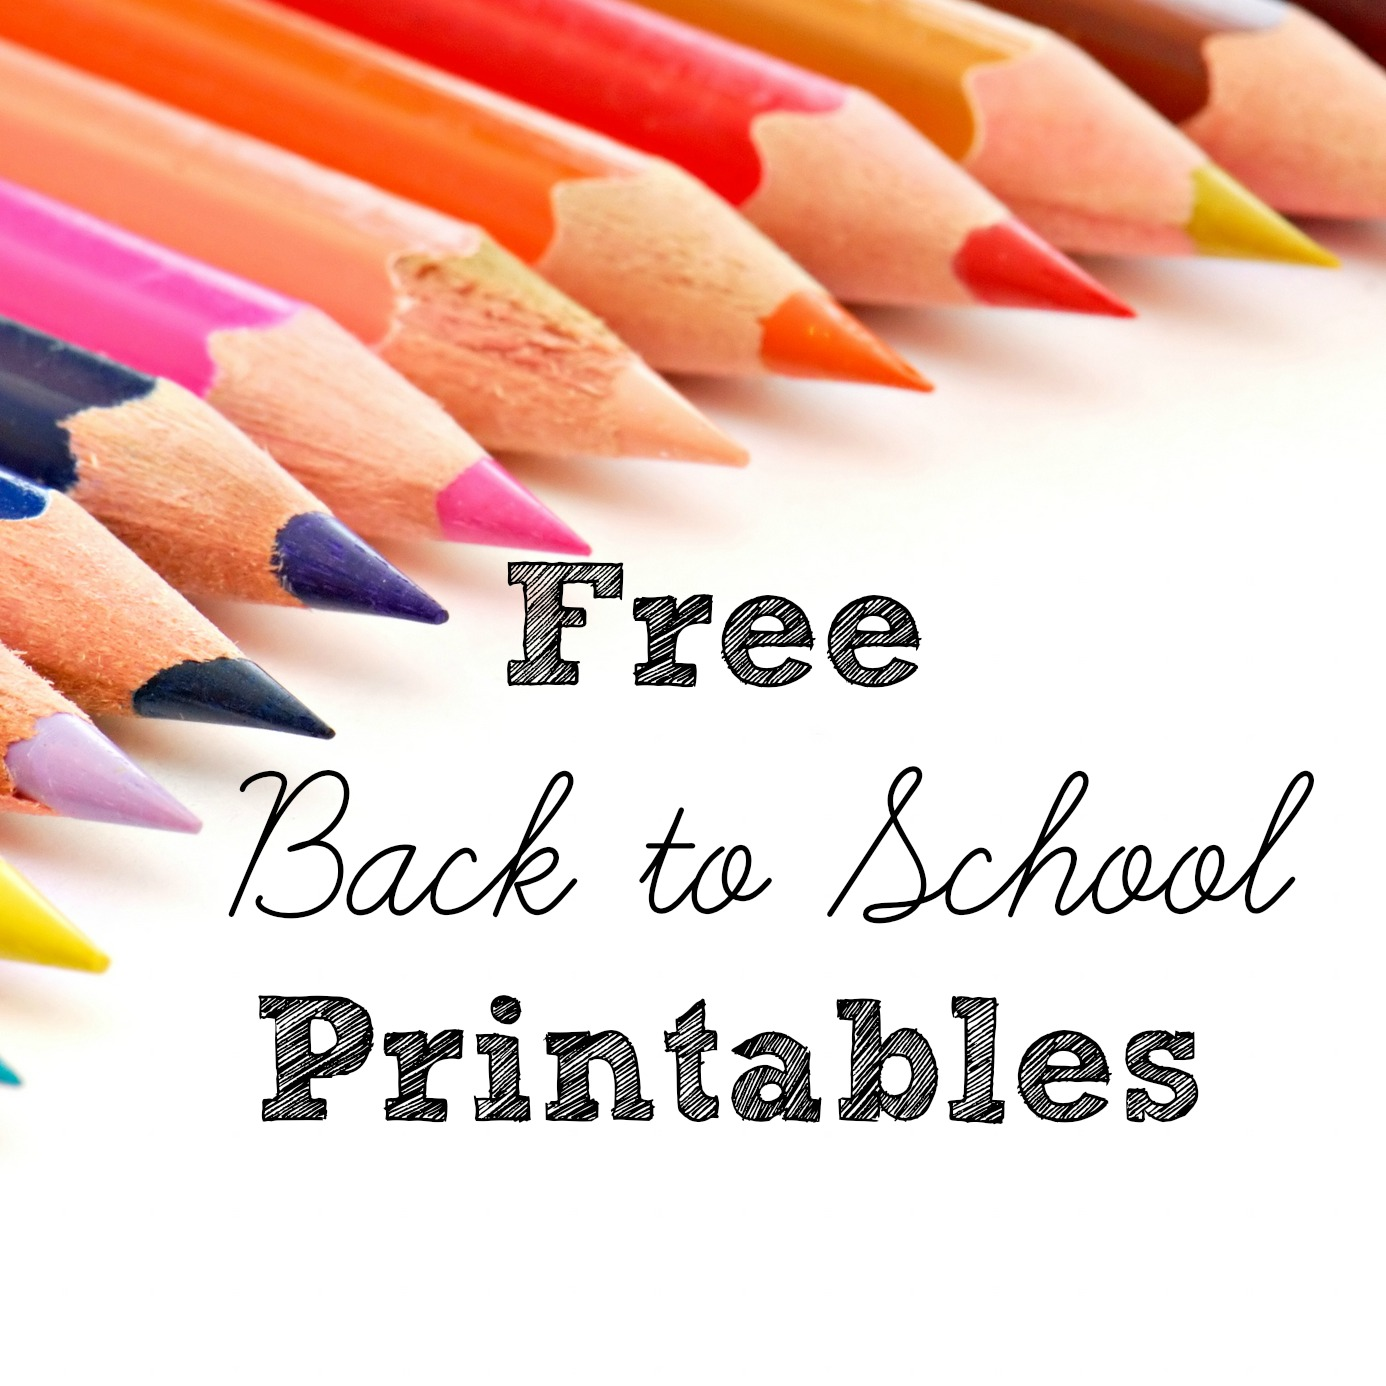 Some of the best things in life are mistakes: free back to school